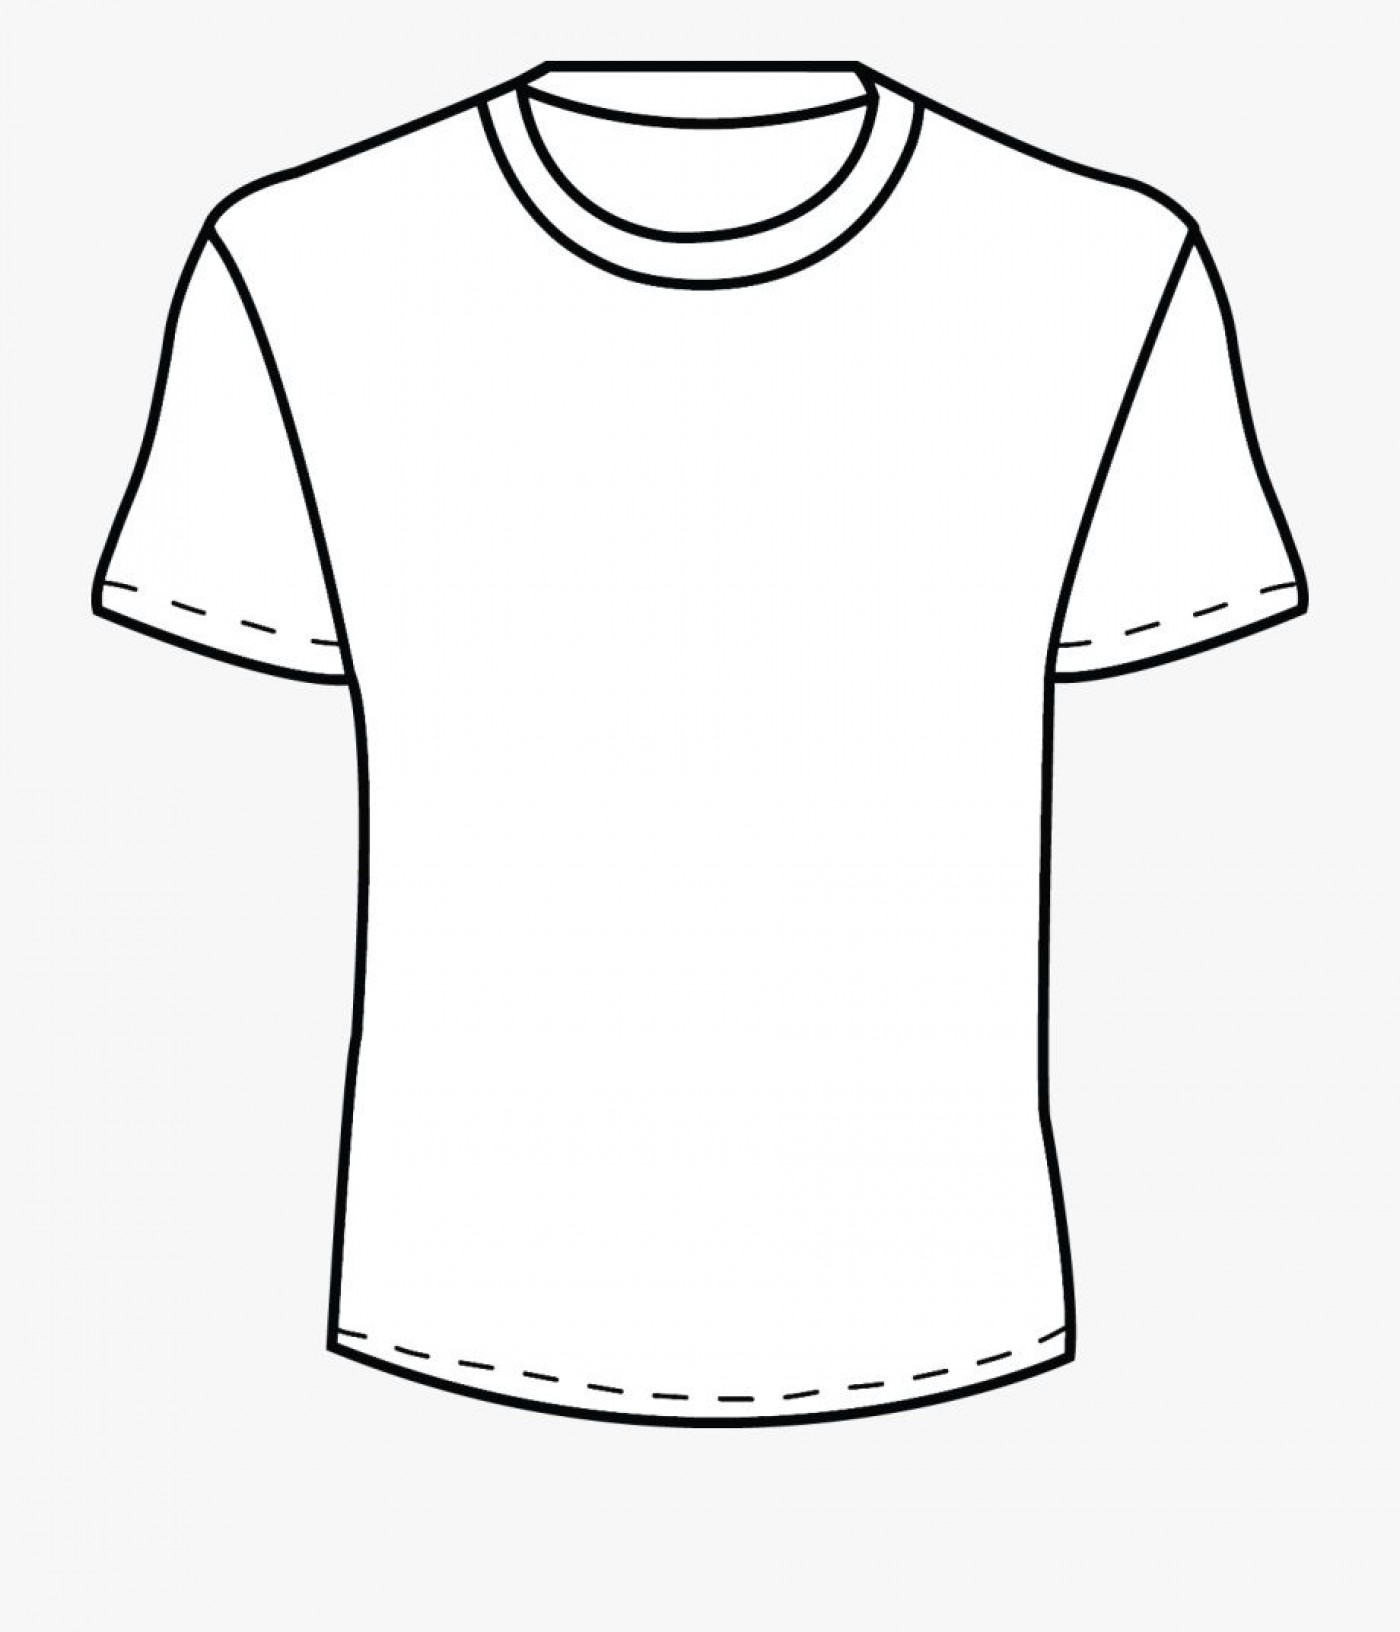 002 Beautiful Plain T Shirt Template Concept  Blank Front And Back1400